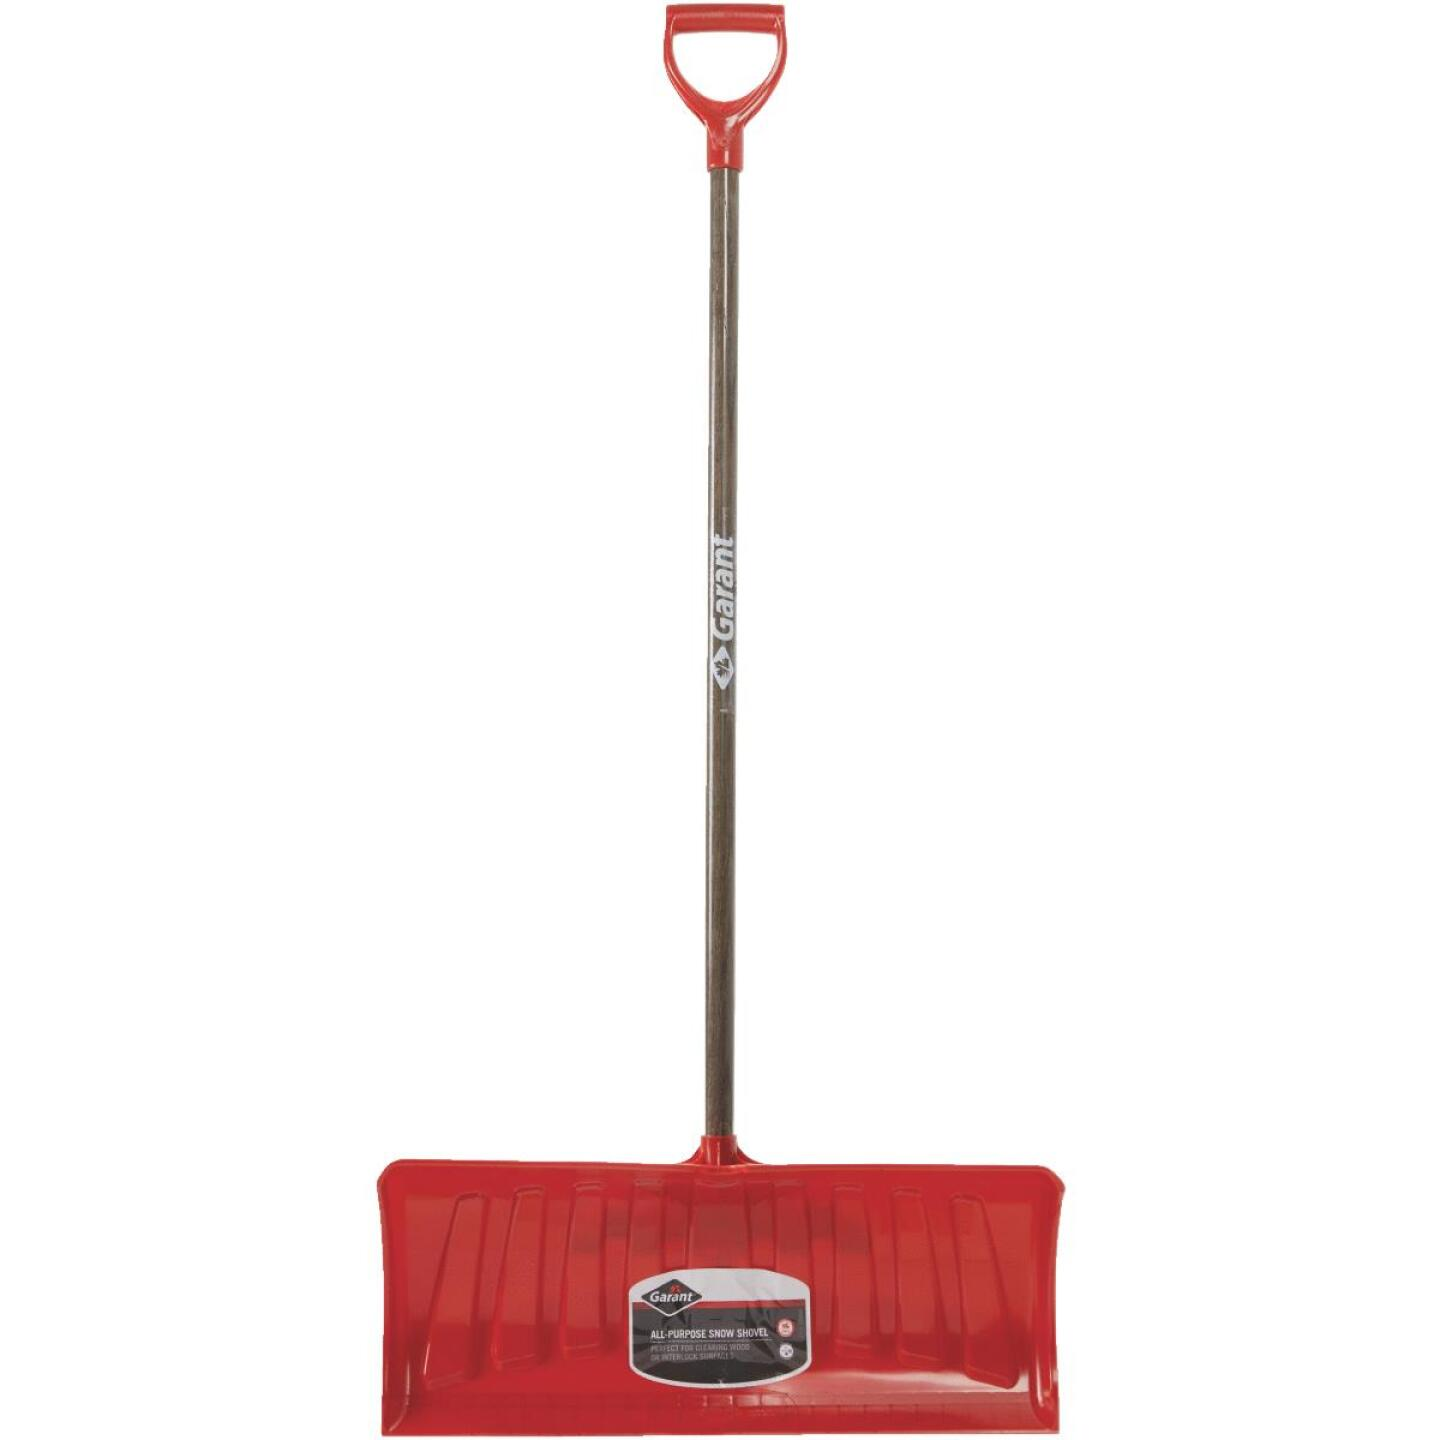 Garant Nordic 26 In. Poly Snow Pusher with 46.25 In. Wood Handle Image 3